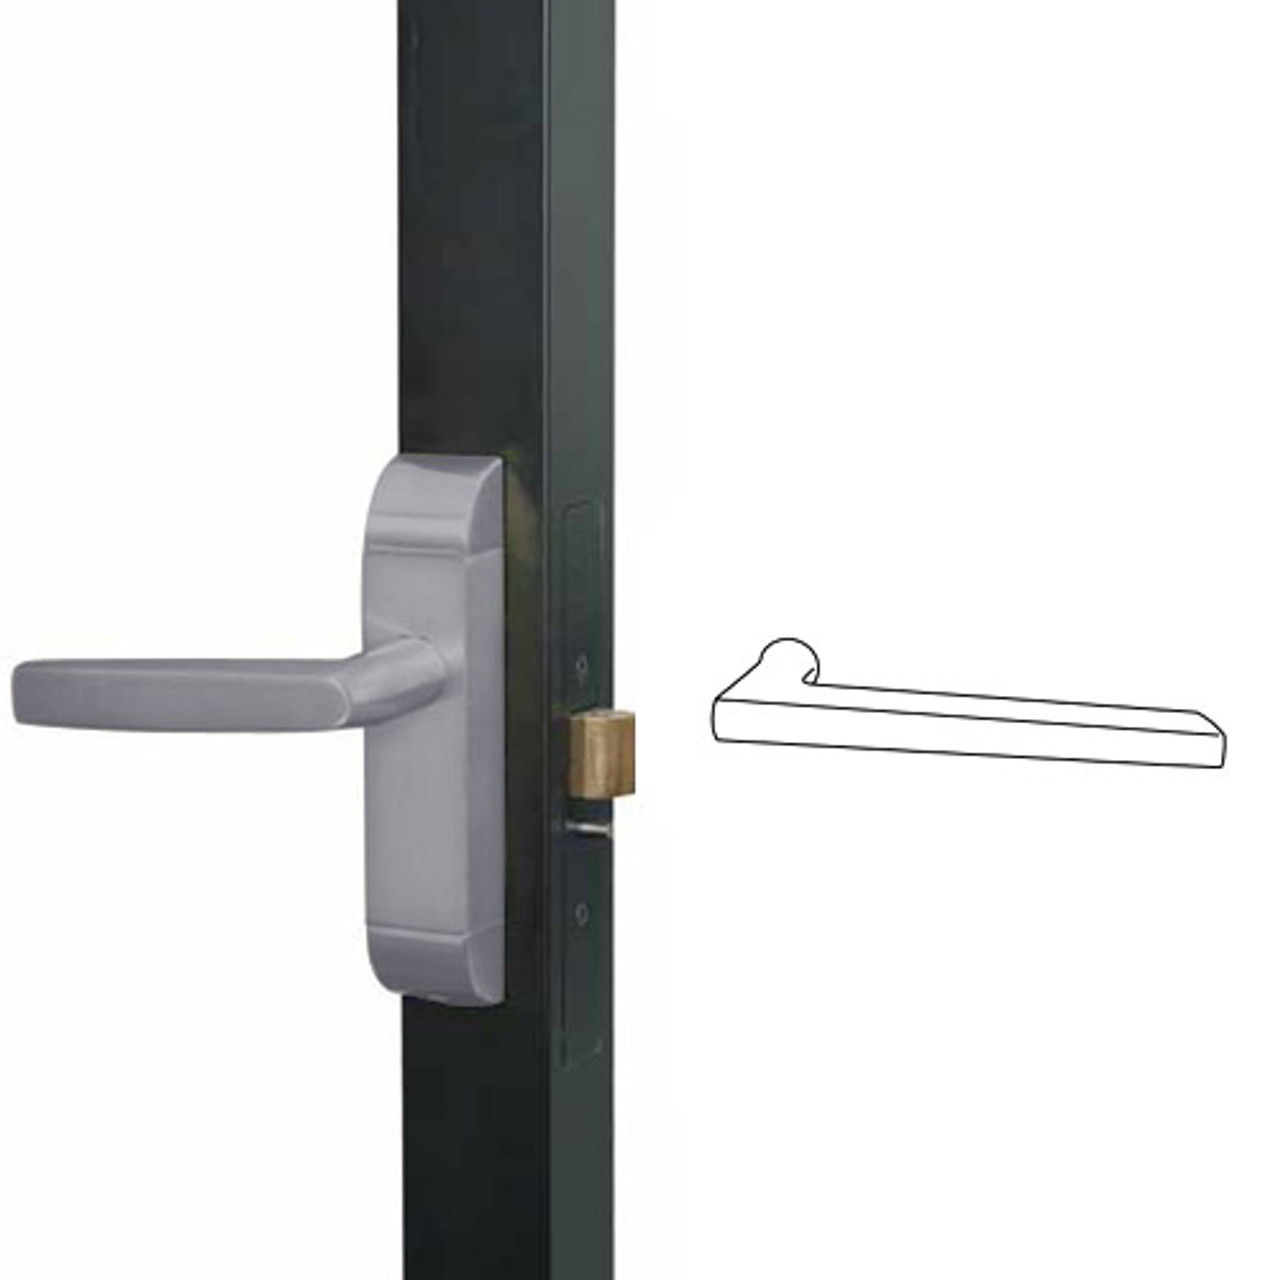 4600M-MD-532-US32D Adams Rite MD Designer Deadlatch handle in Satin Stainless Finish